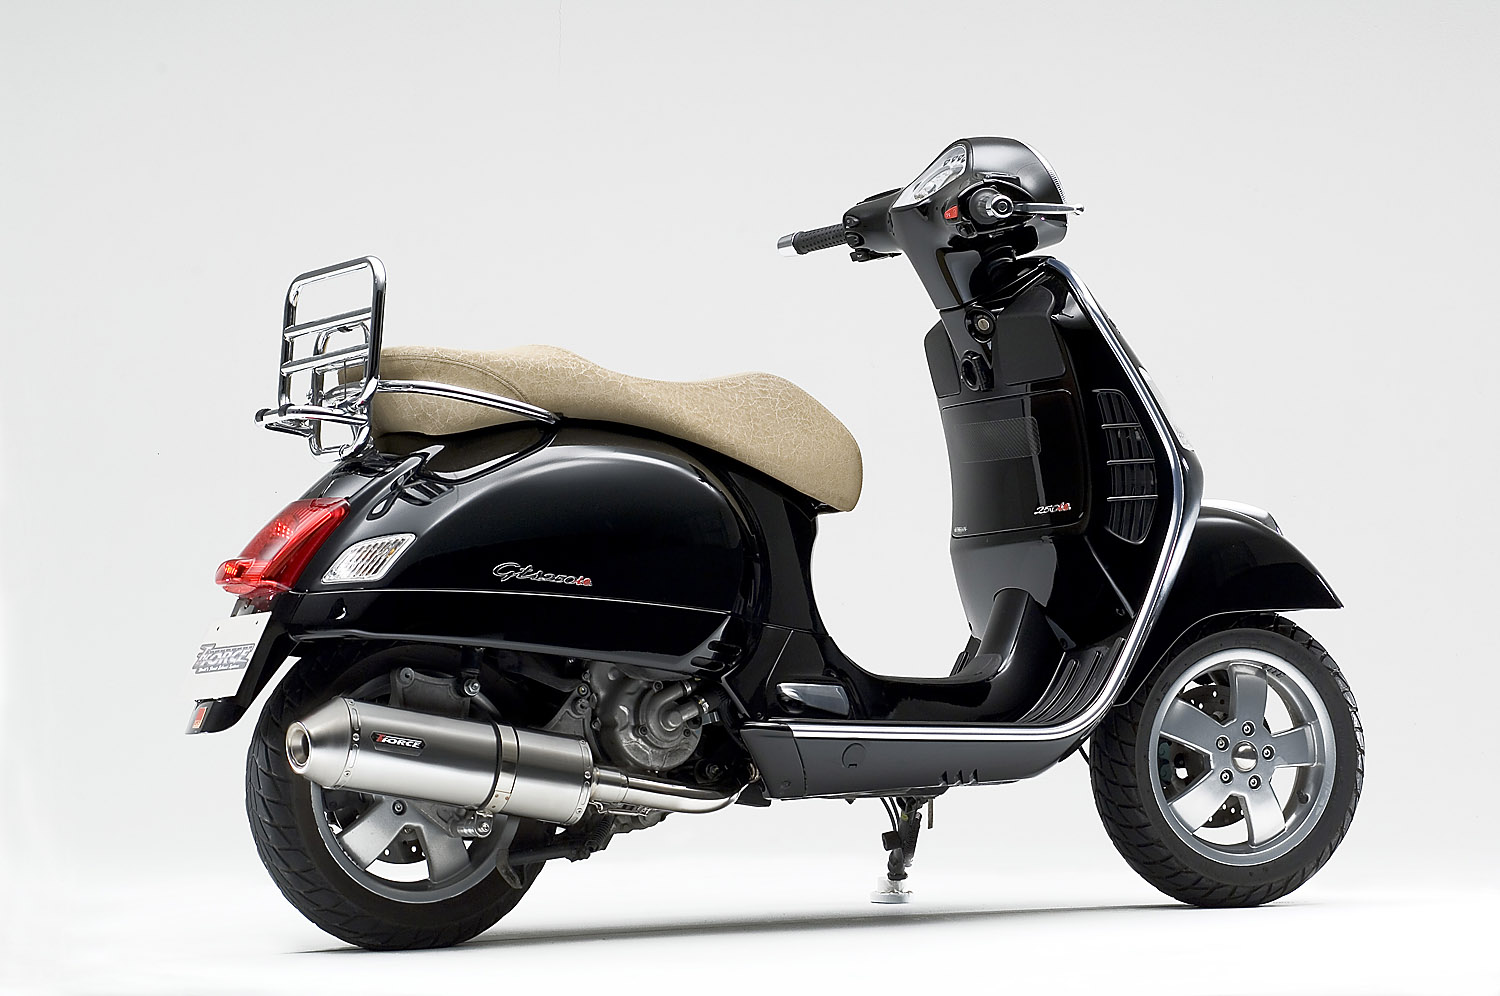 vespa gts 125 pics specs and list of seriess by year. Black Bedroom Furniture Sets. Home Design Ideas